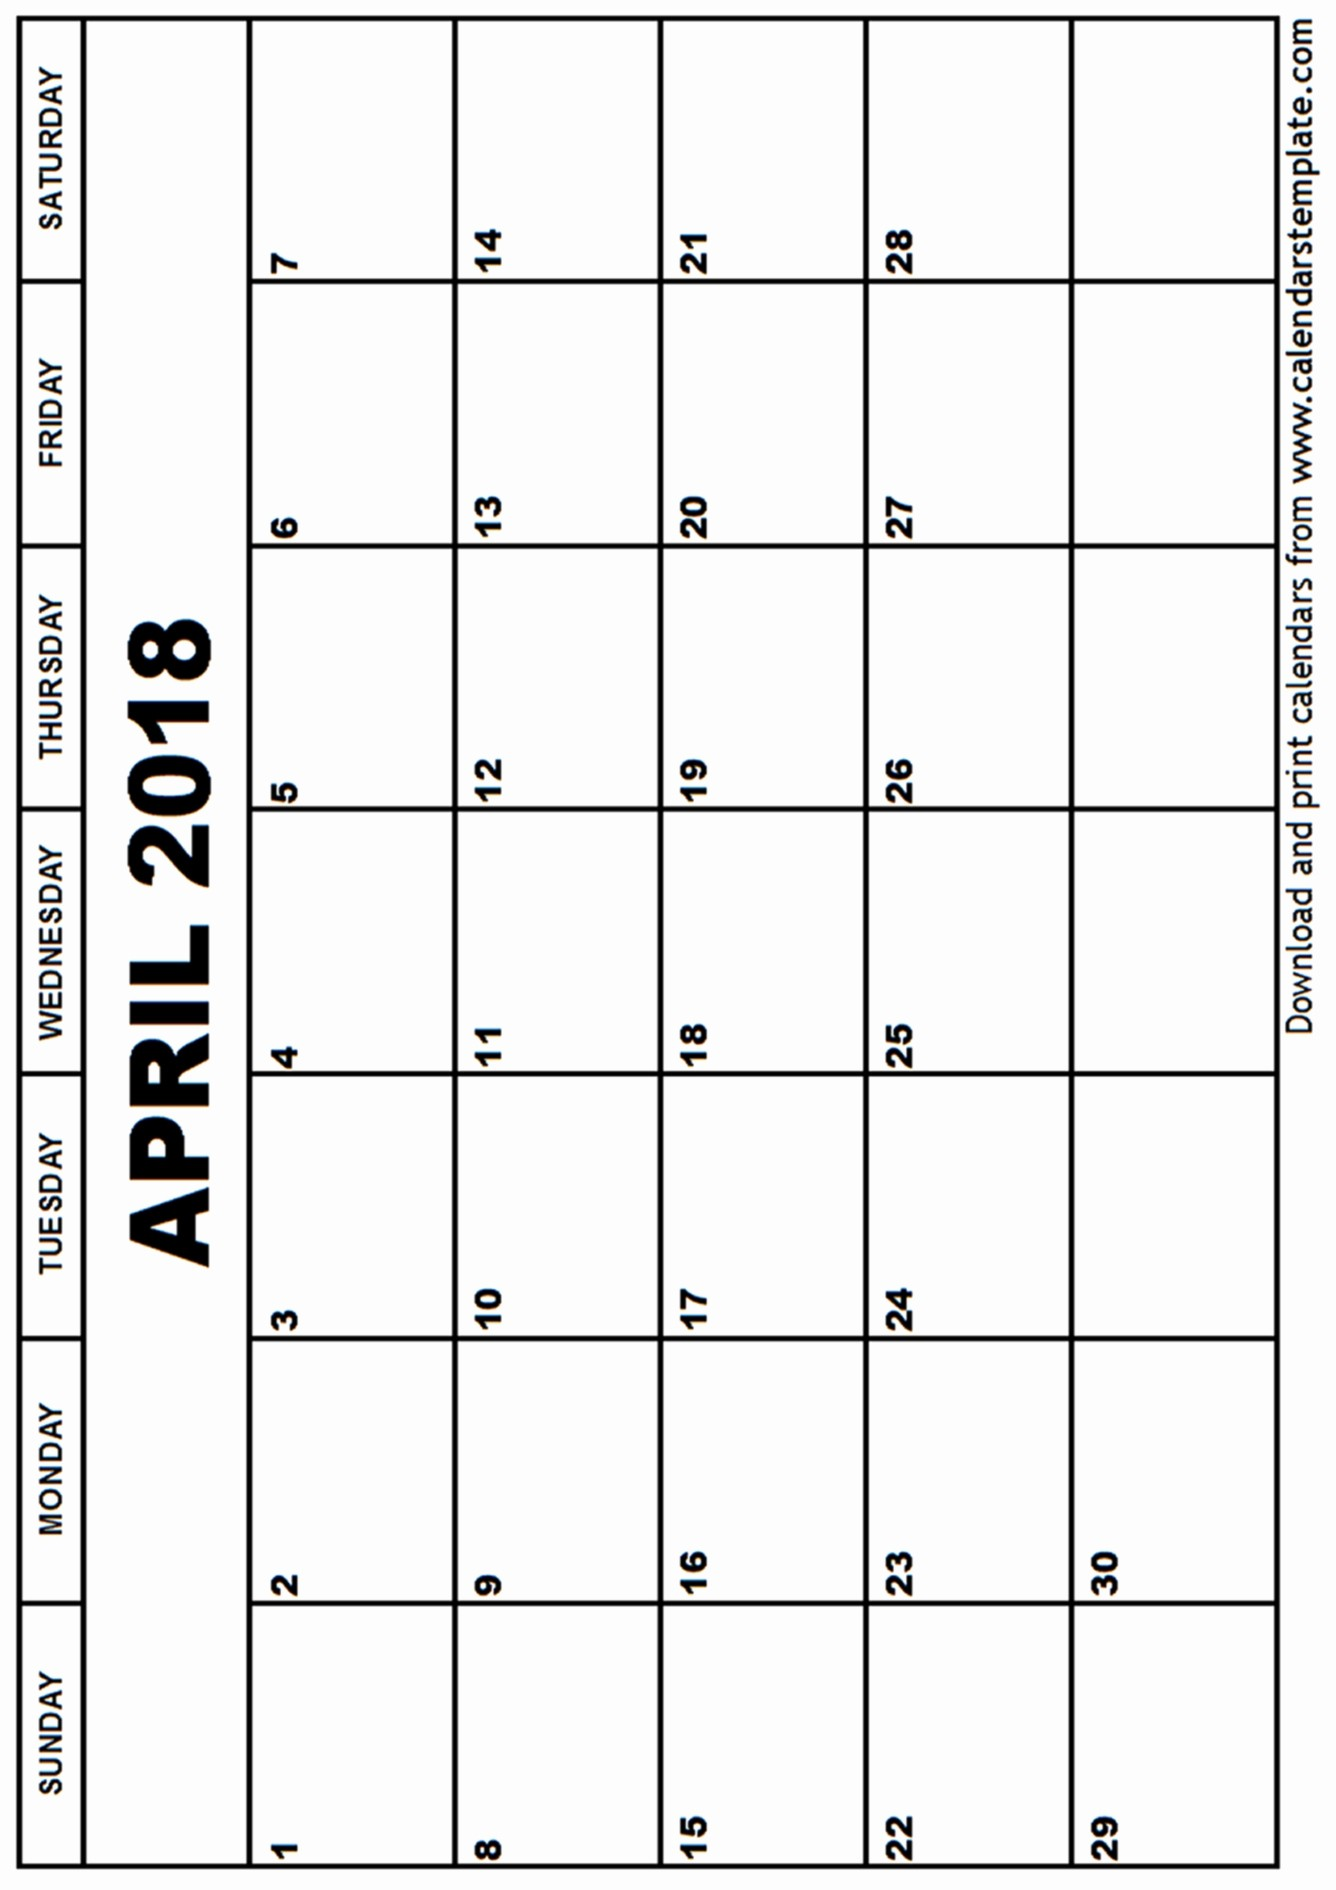 Blank April 2018 Calendar Template Unique April 2018 Calendar Template